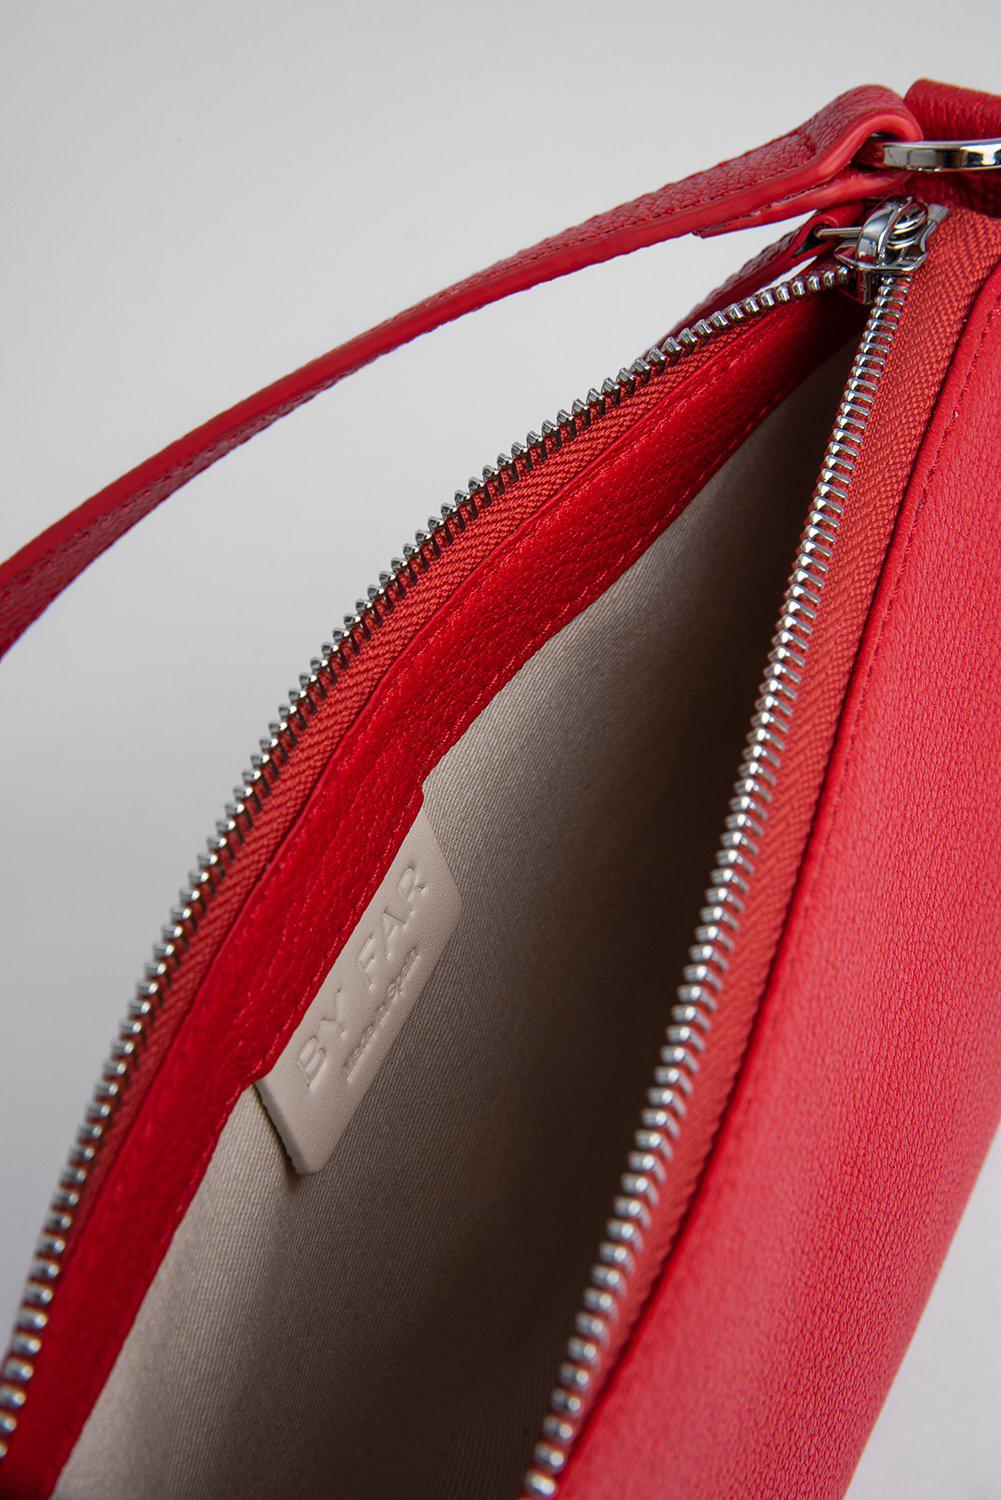 Rachel Red Grained Leather 5